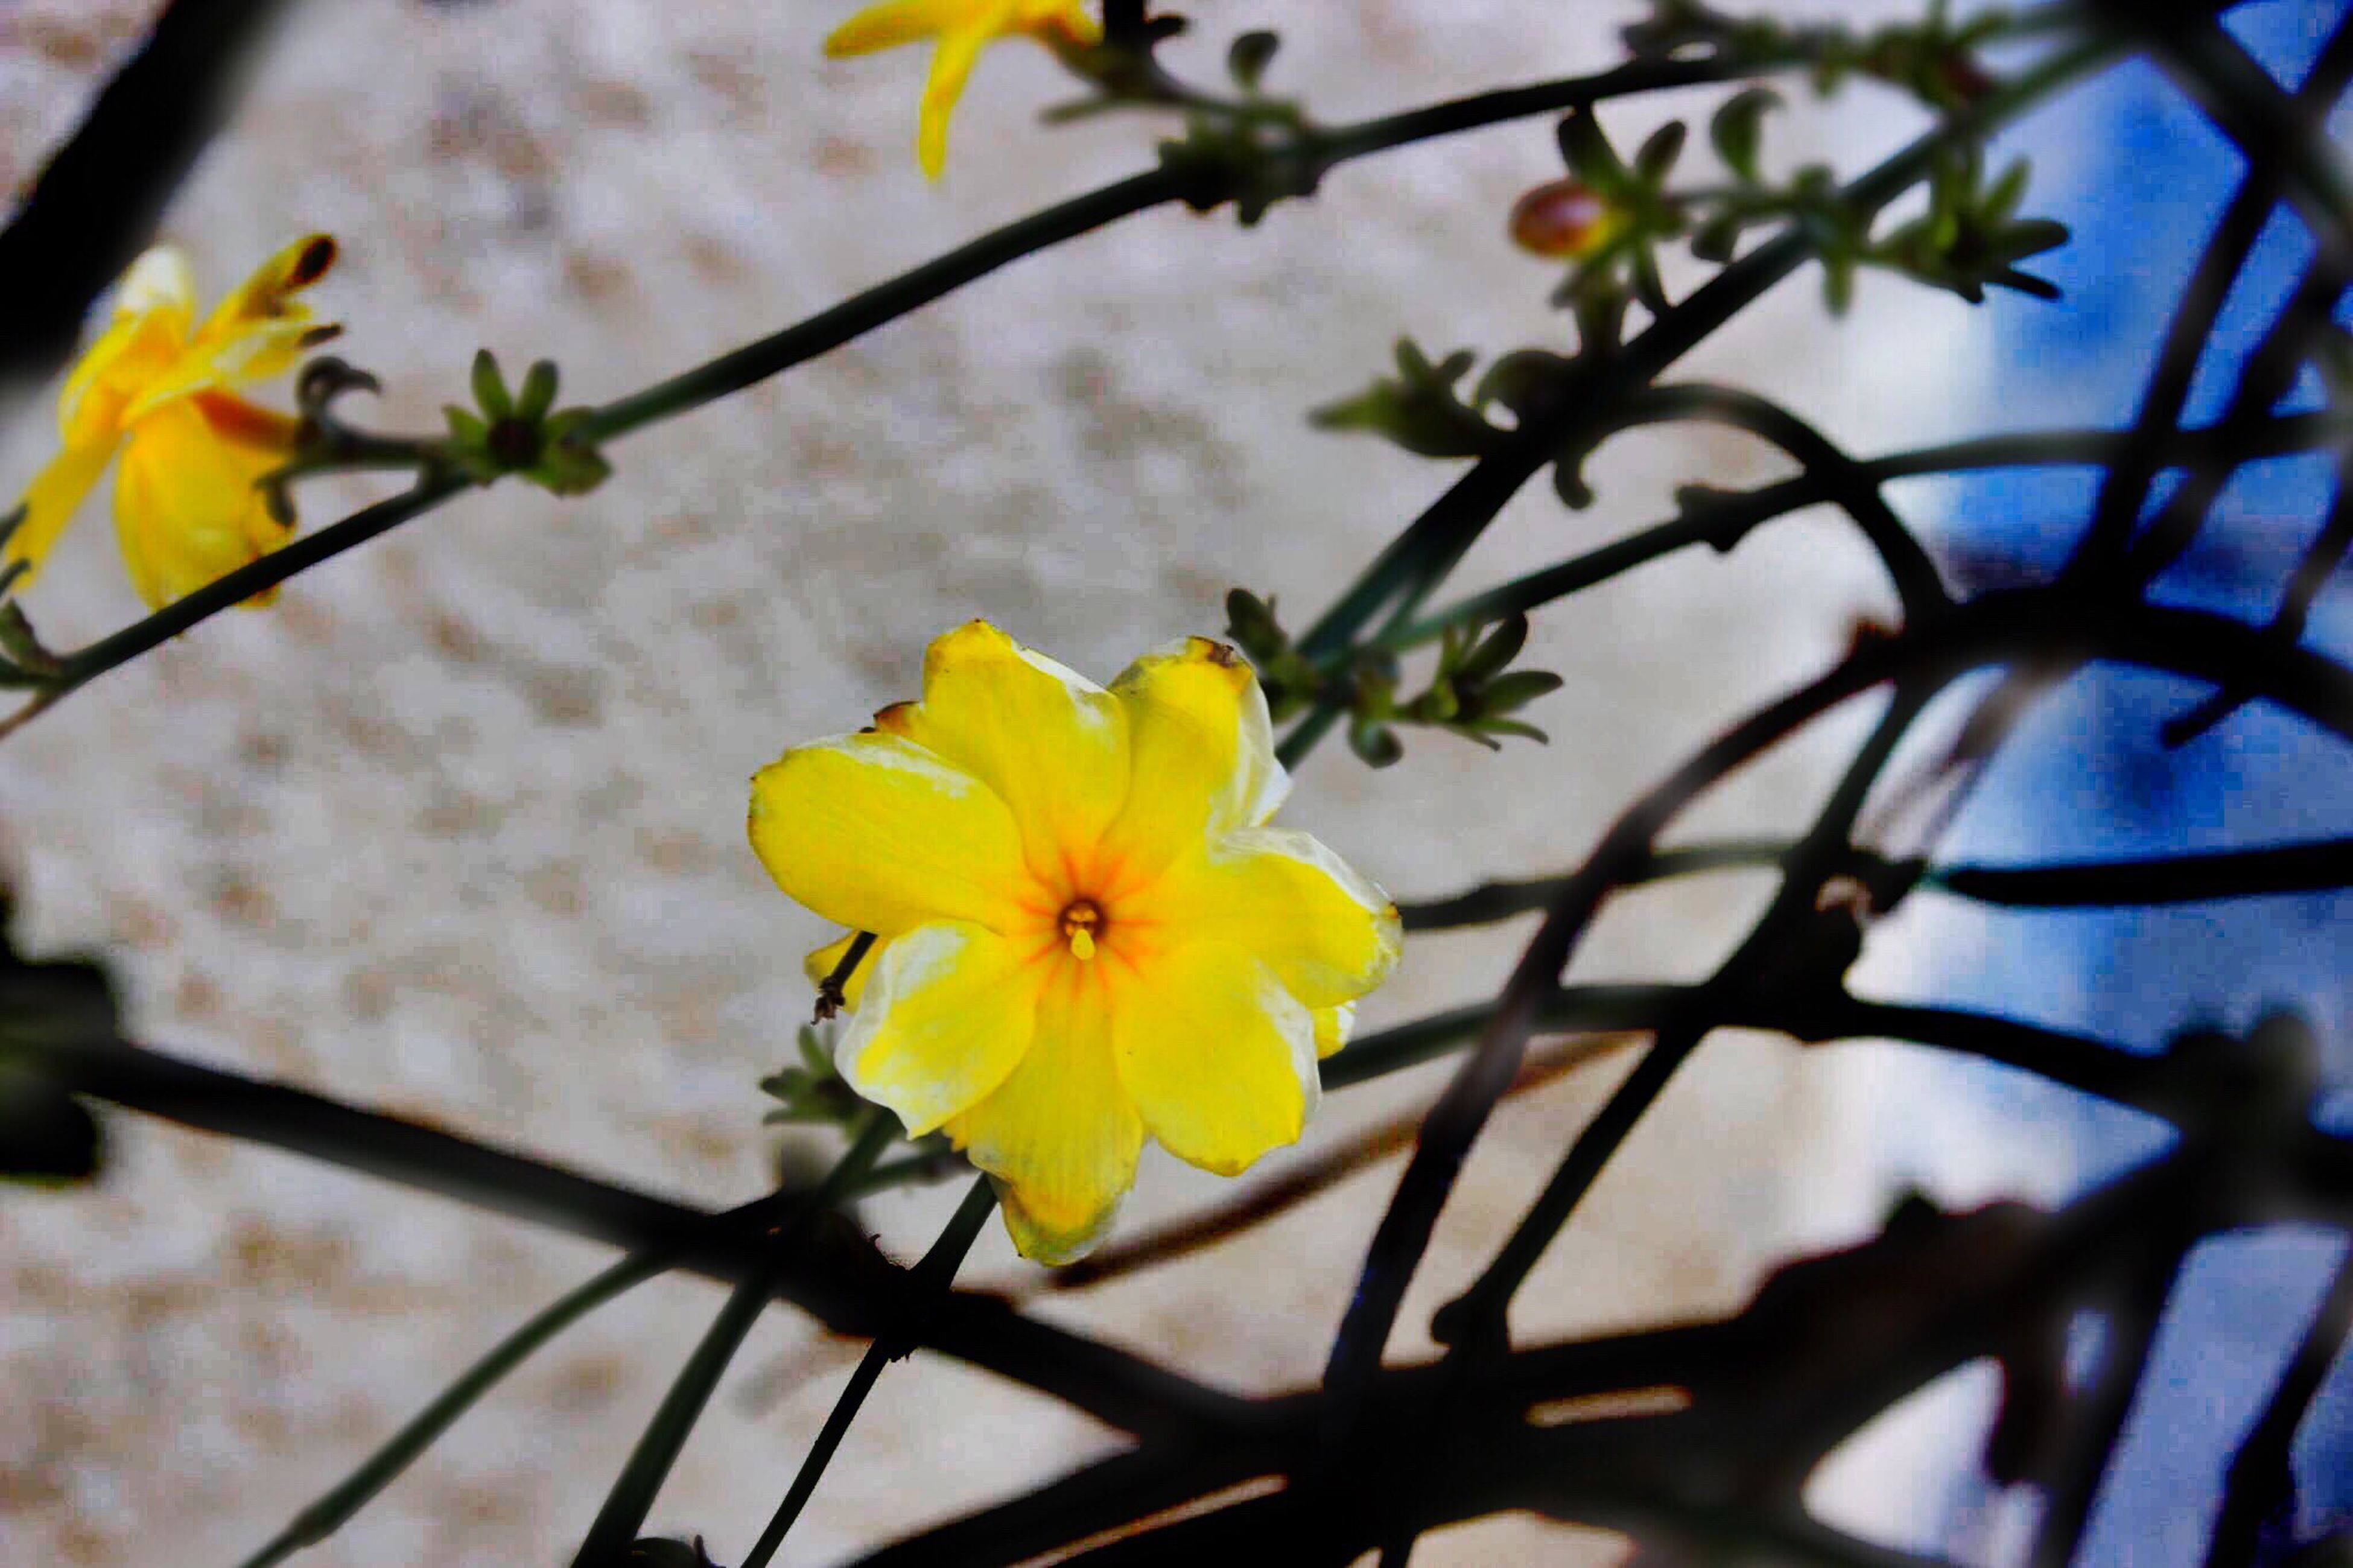 flower, fragility, nature, beauty in nature, growth, freshness, yellow, close-up, flower head, no people, petal, blooming, low angle view, outdoors, day, branch